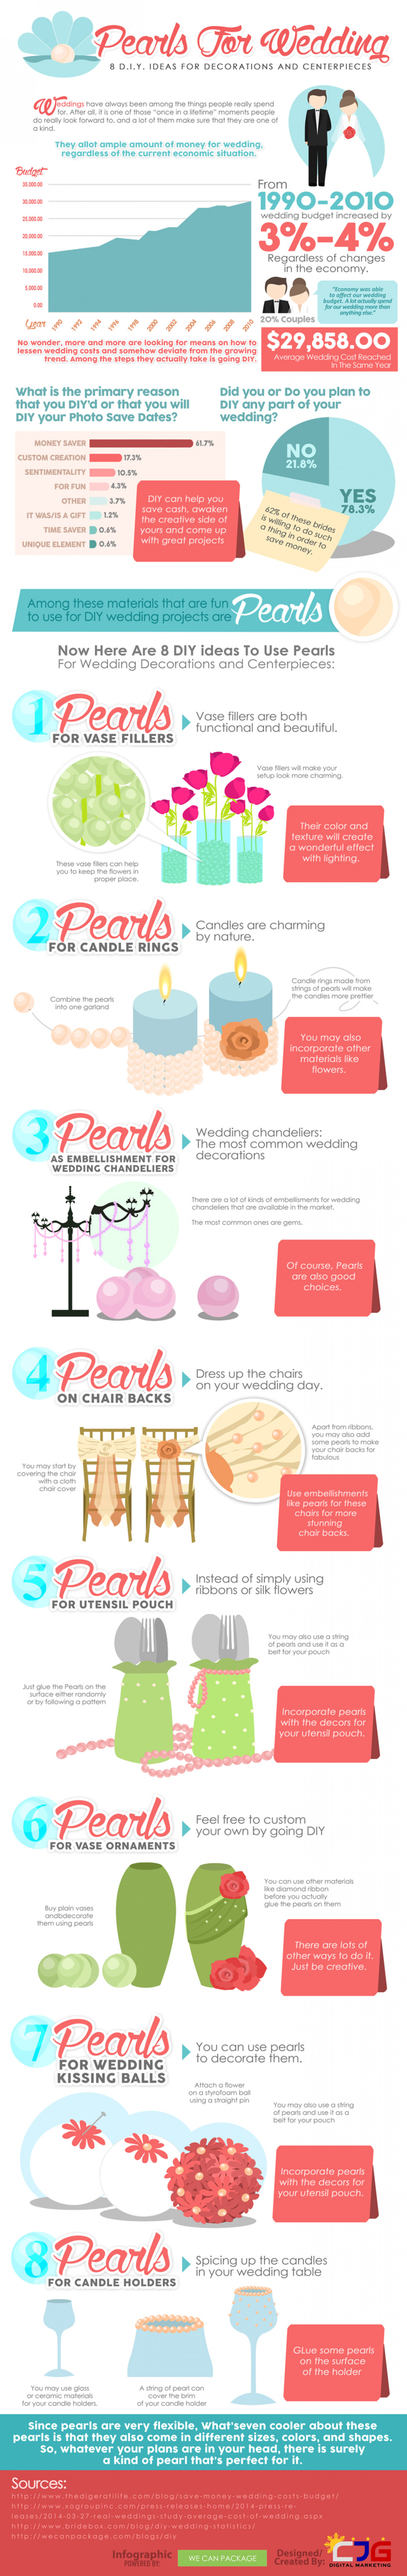 8 DIY Ideas to Use Pearl for Wedding Decorations and Centerpieces  Infographic